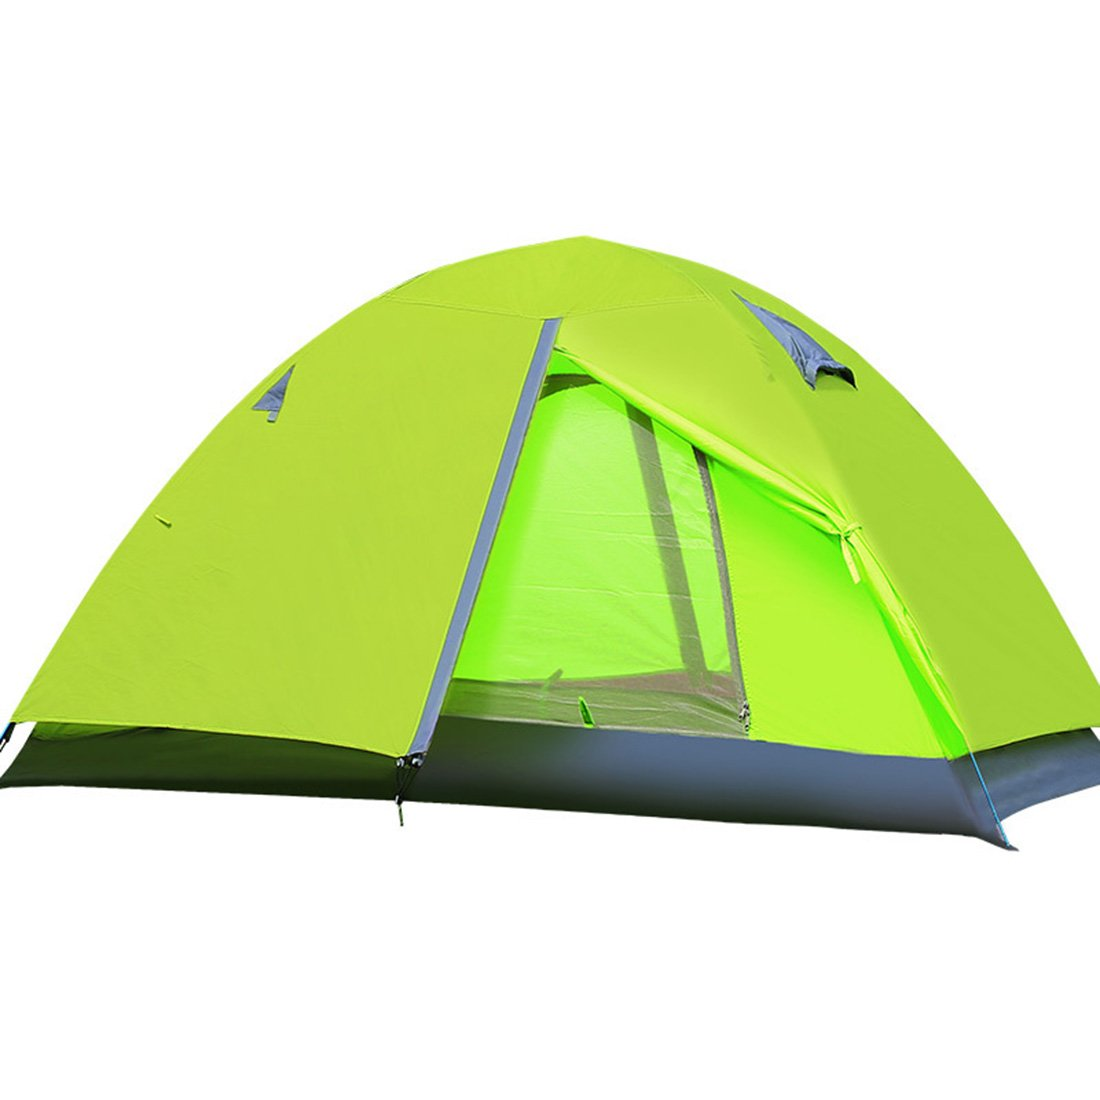 CHYIR Outdoor Camping Tent Rain Proof Double Layers Tent Aluminum Pole Tent Green